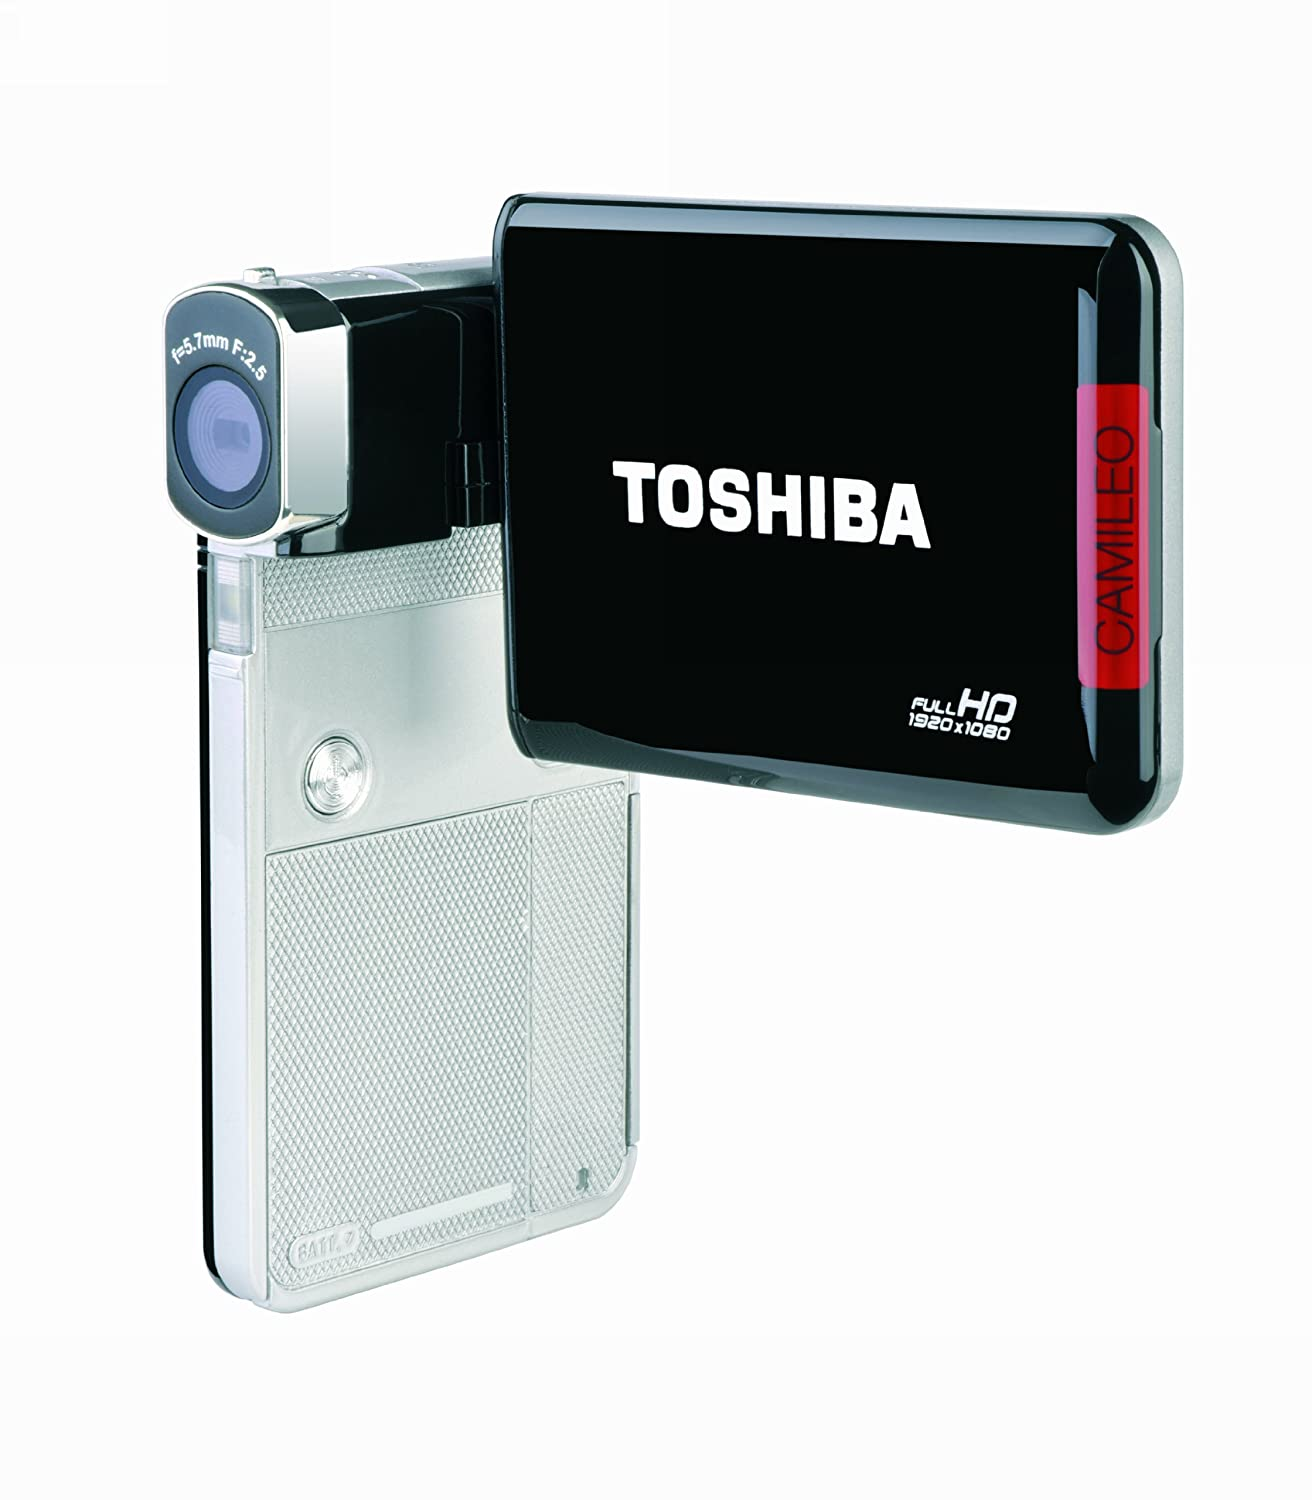 Amazon.com : Toshiba Camileo S30 Full HD Camcorder (Silver/Black)  (Discontinued by Manufacturer) : Camera & Photo